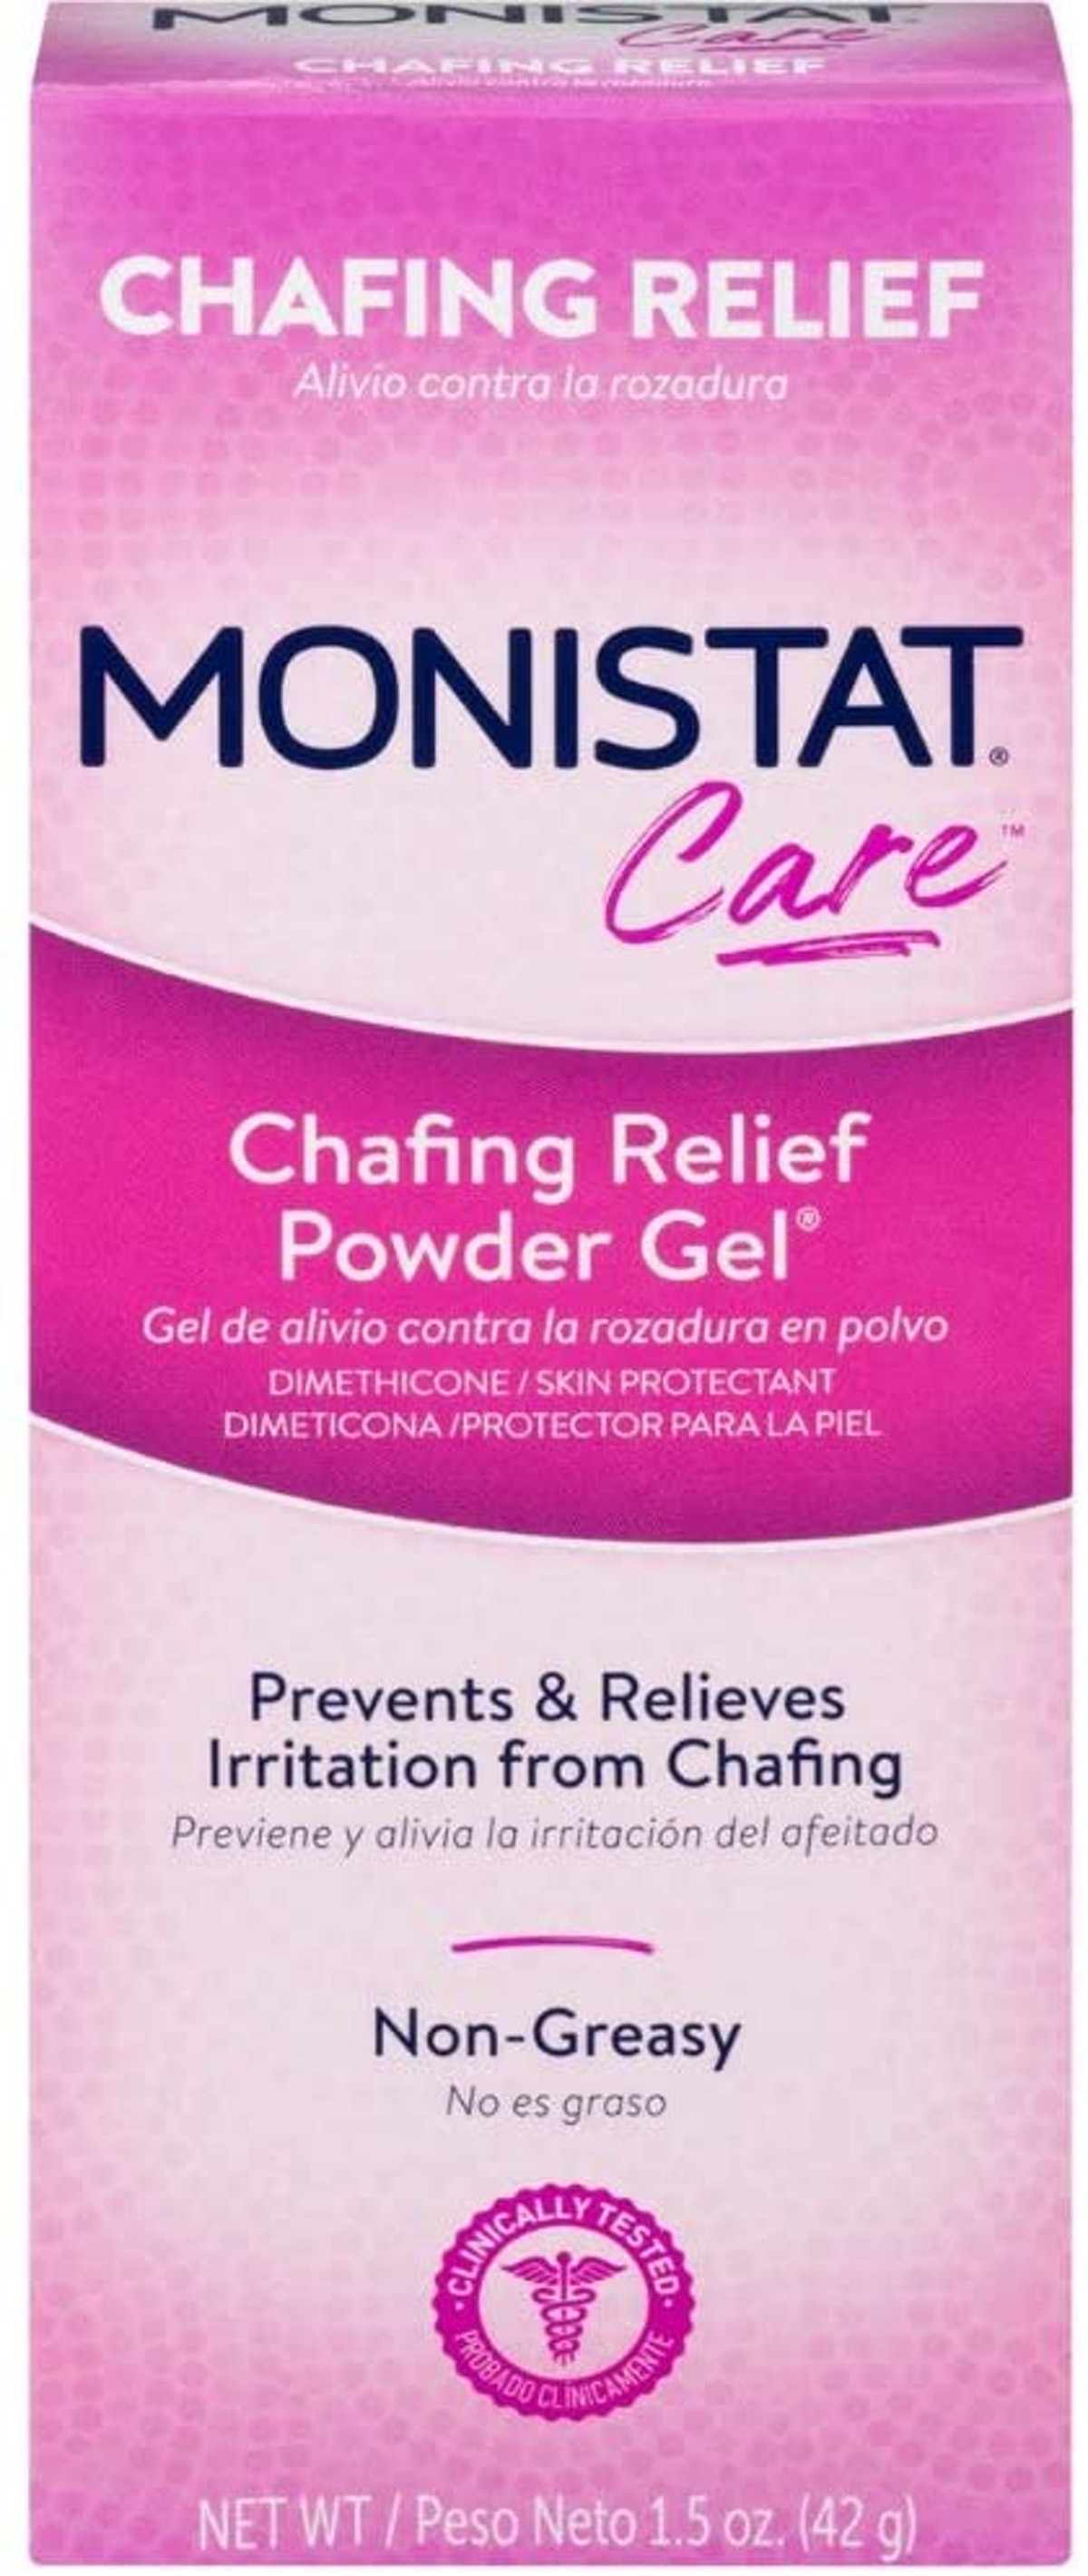 Monistat Care Chafing Relief Powder Gel